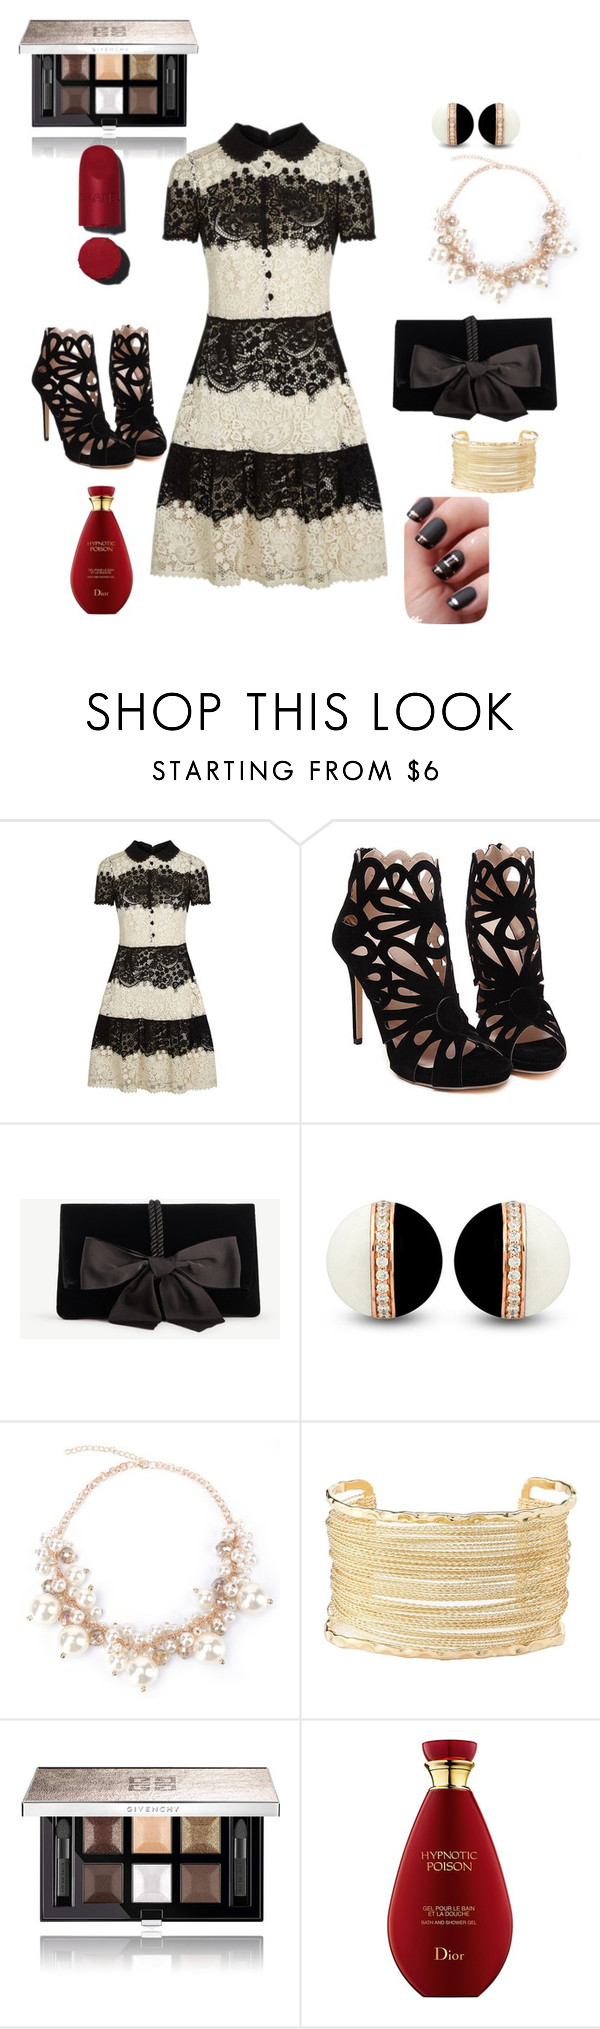 """""""Untitled #46"""" by christinaioana ❤ liked on Polyvore featuring interior, interiors, interior design, home, home decor, interior decorating, RED Valentino, Ann Taylor, Charlotte Russe and Givenchy"""